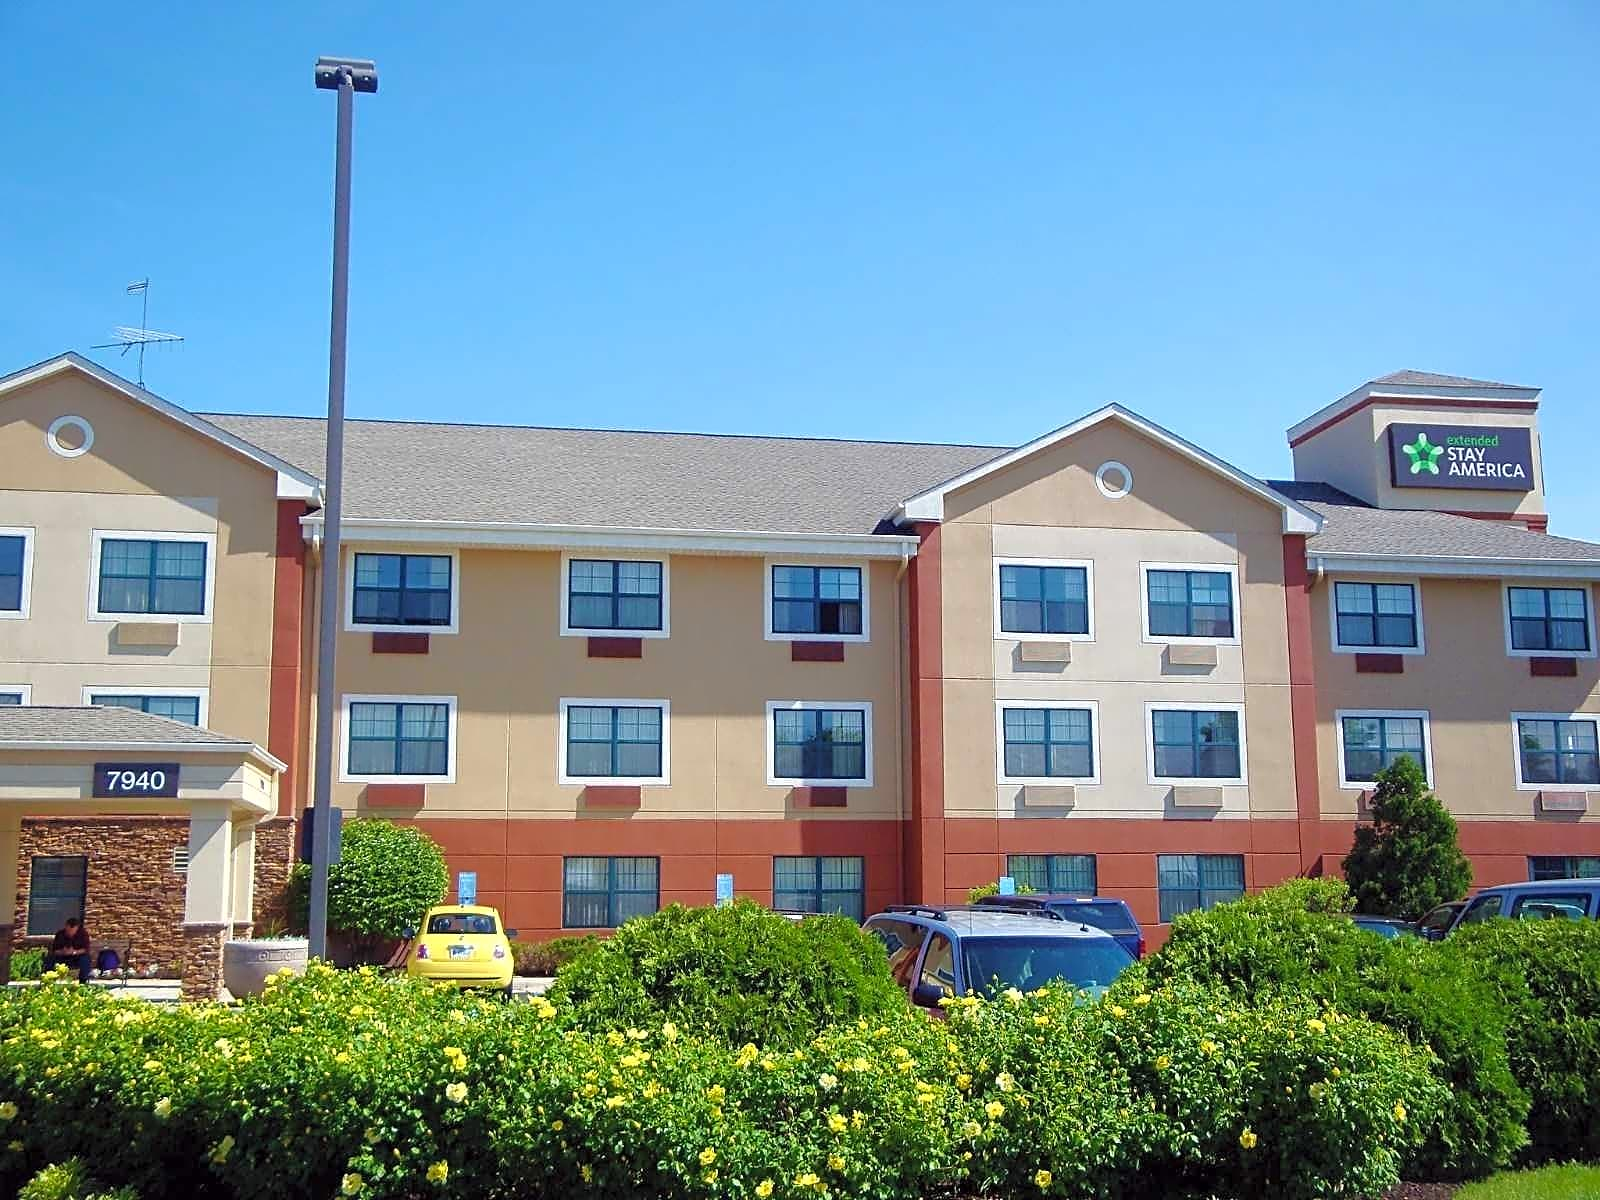 Studio Apartments In Plainfield Indiana